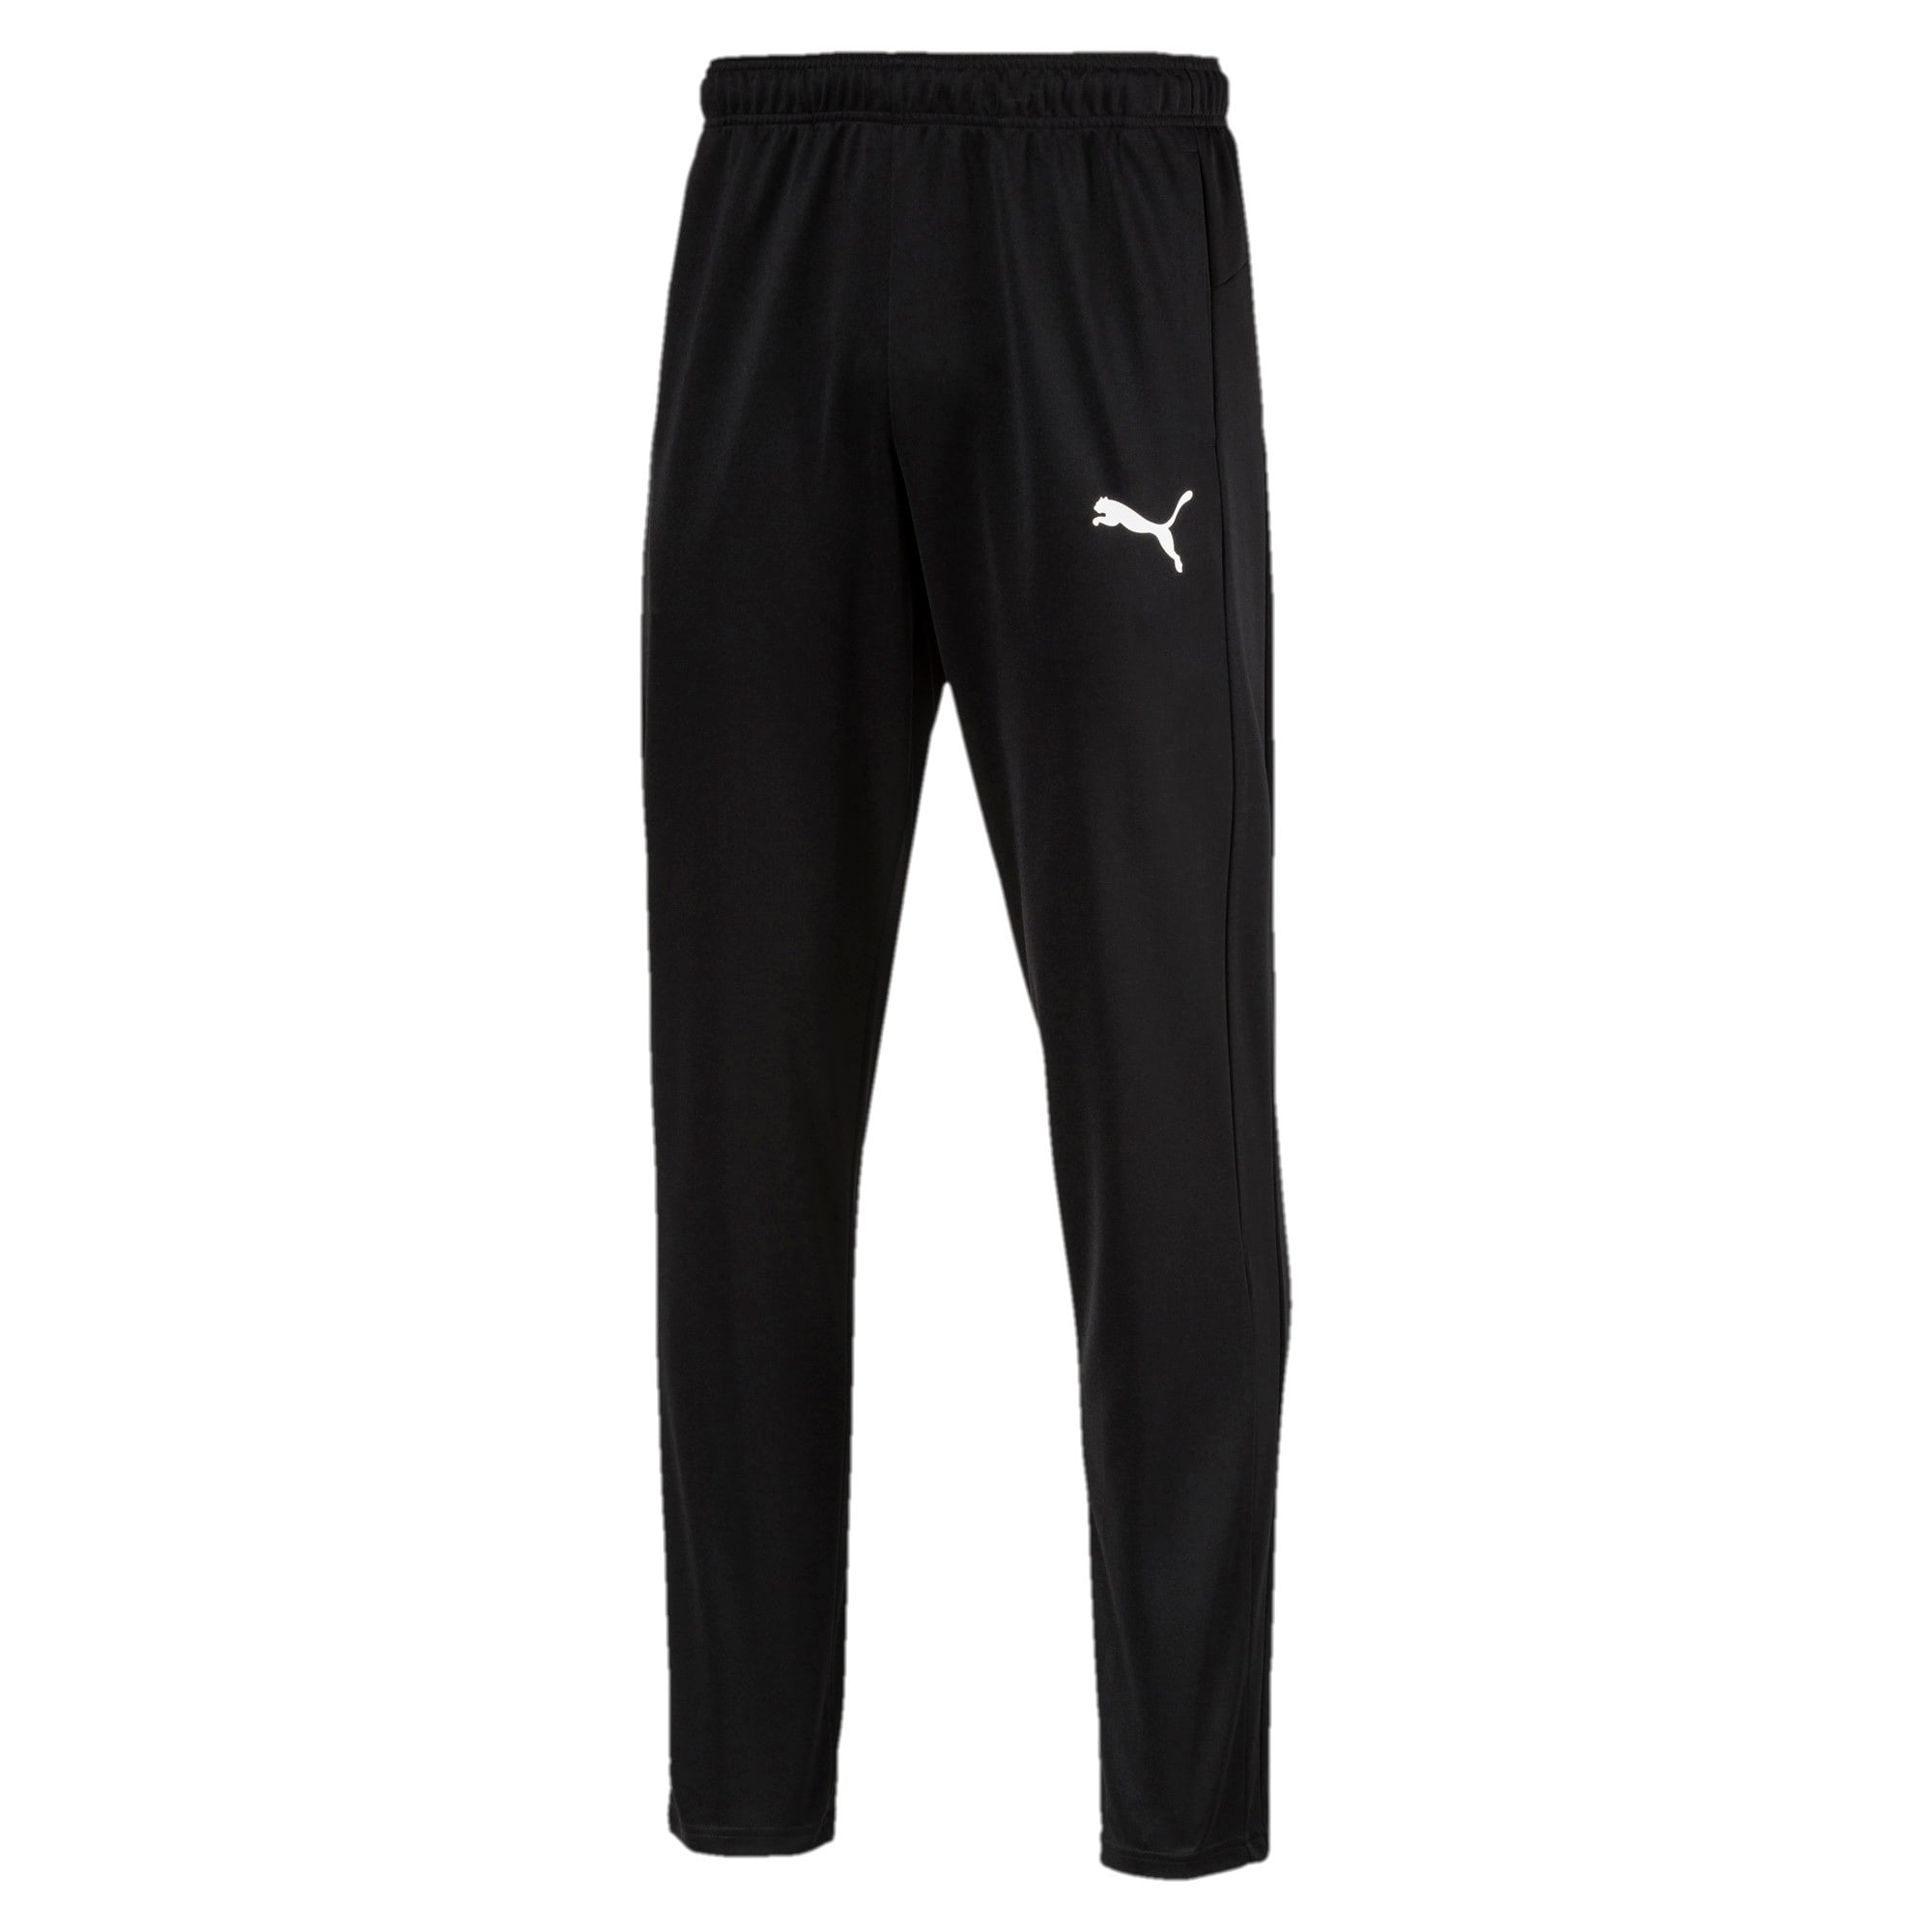 Thumbnail 1 of Active Trico Men's Sweatpants, Puma Black, medium